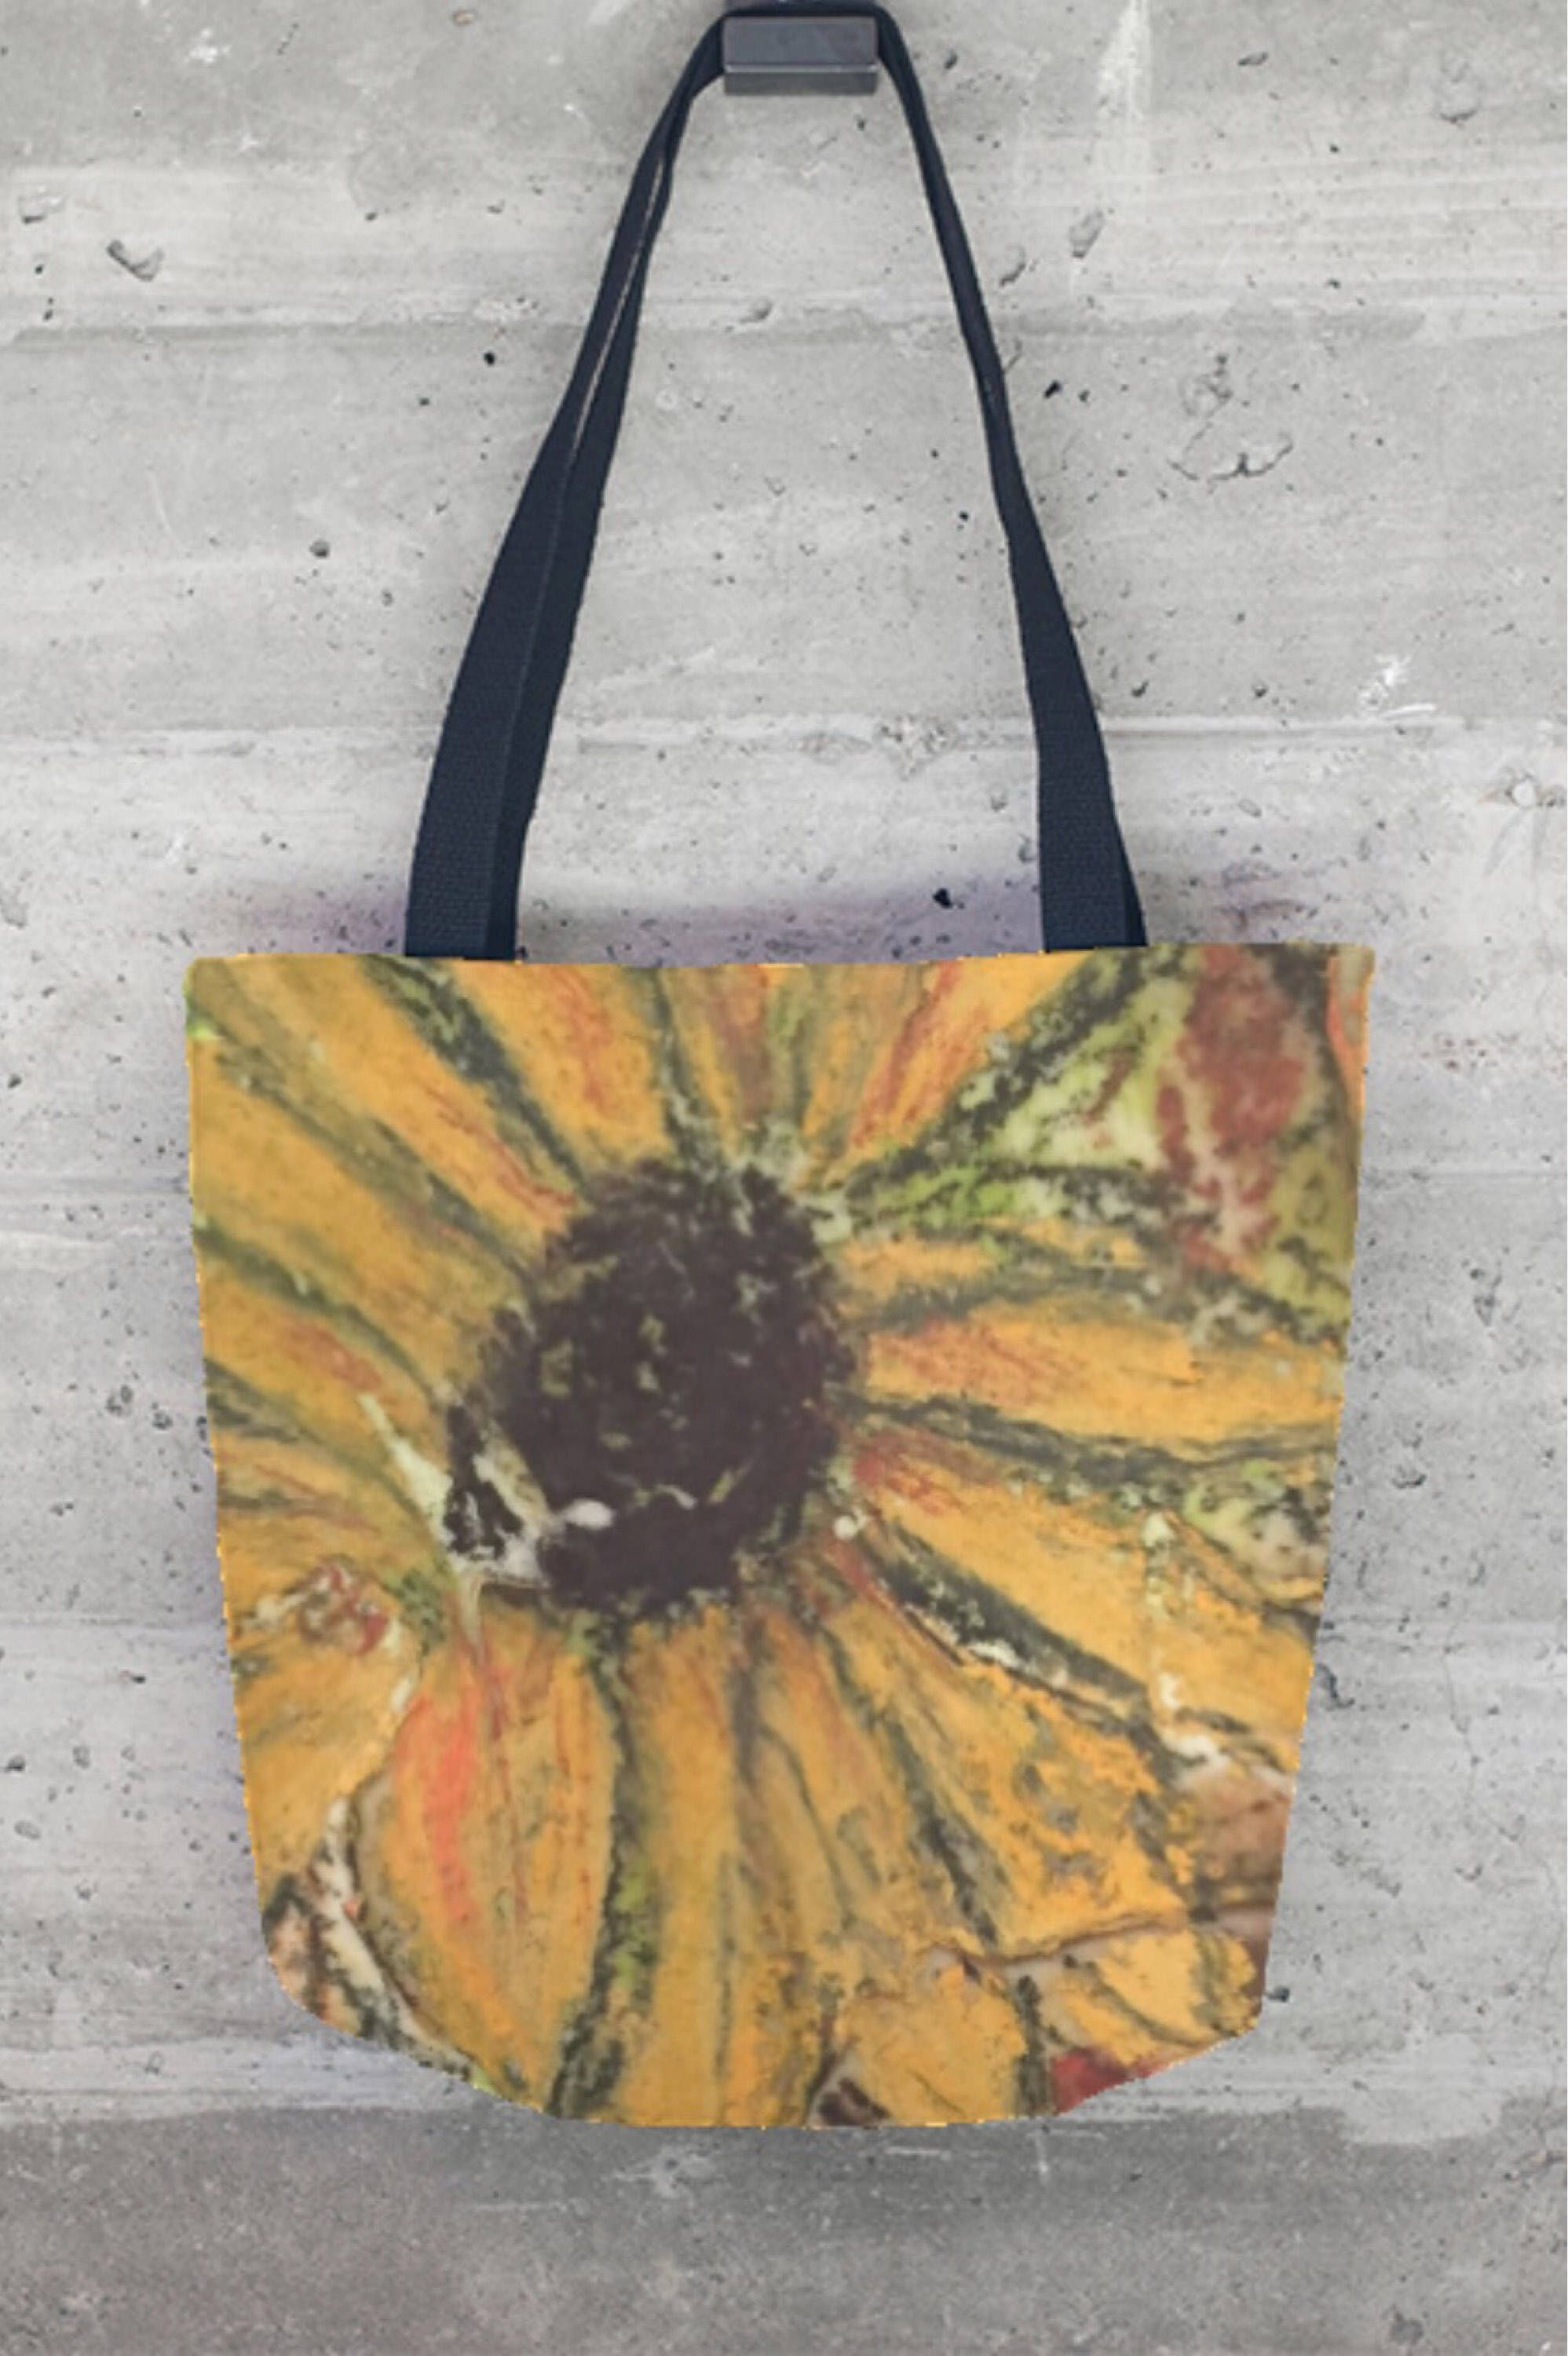 VIDA Tote Bag - Natura by VIDA